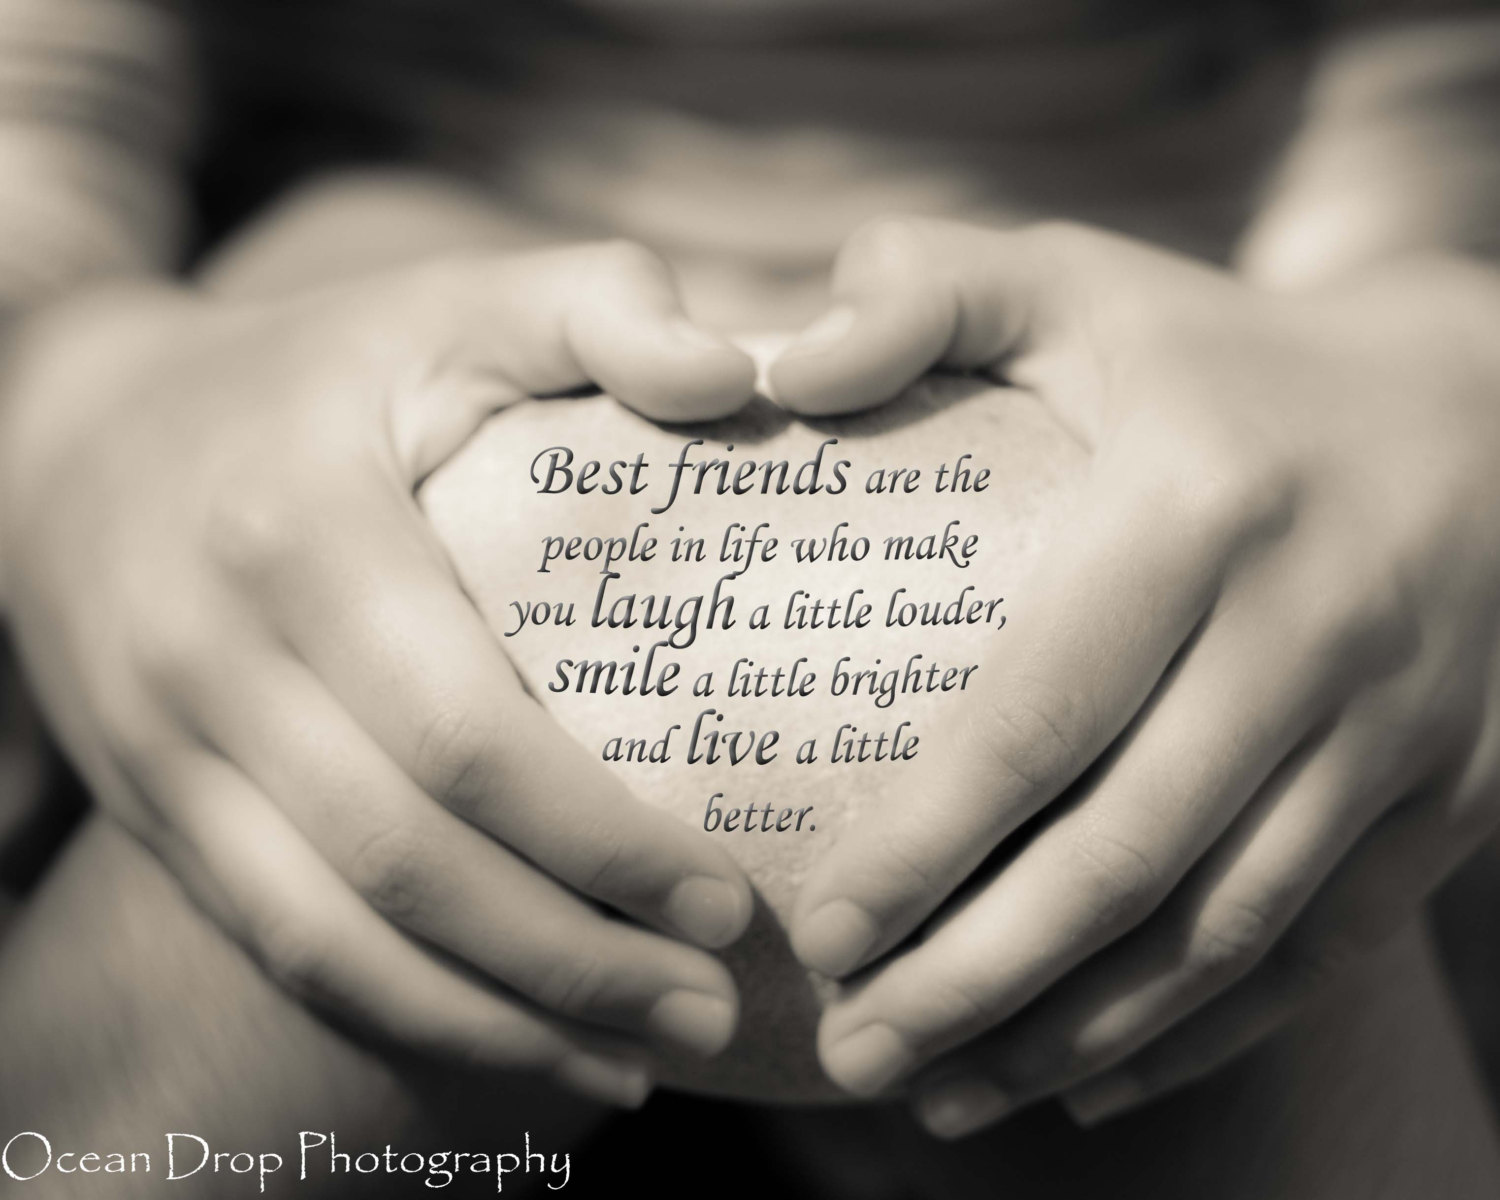 Inspirational Quotes About Death Of A Best Friend Image: Inspirational Quotes For Her Birthday. QuotesGram